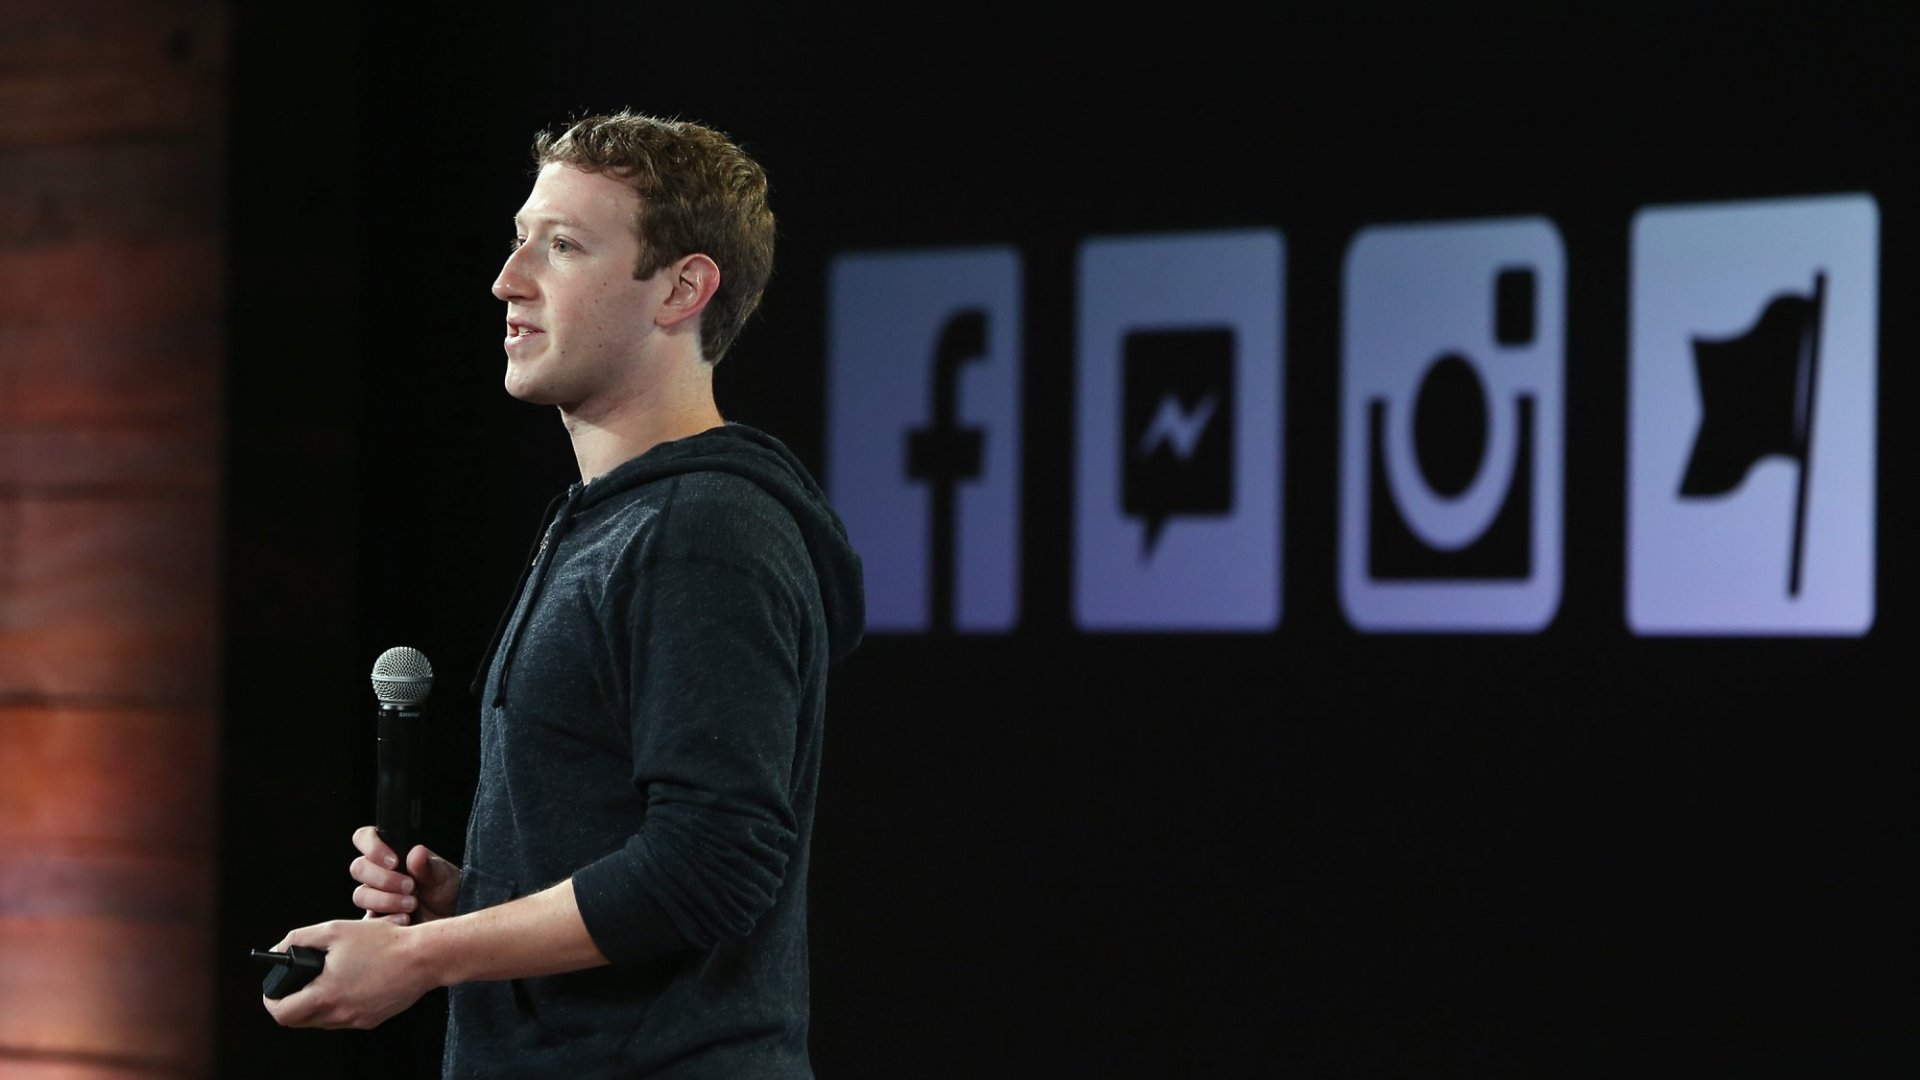 5 Things You Didn't Know About Mark Zuckerberg